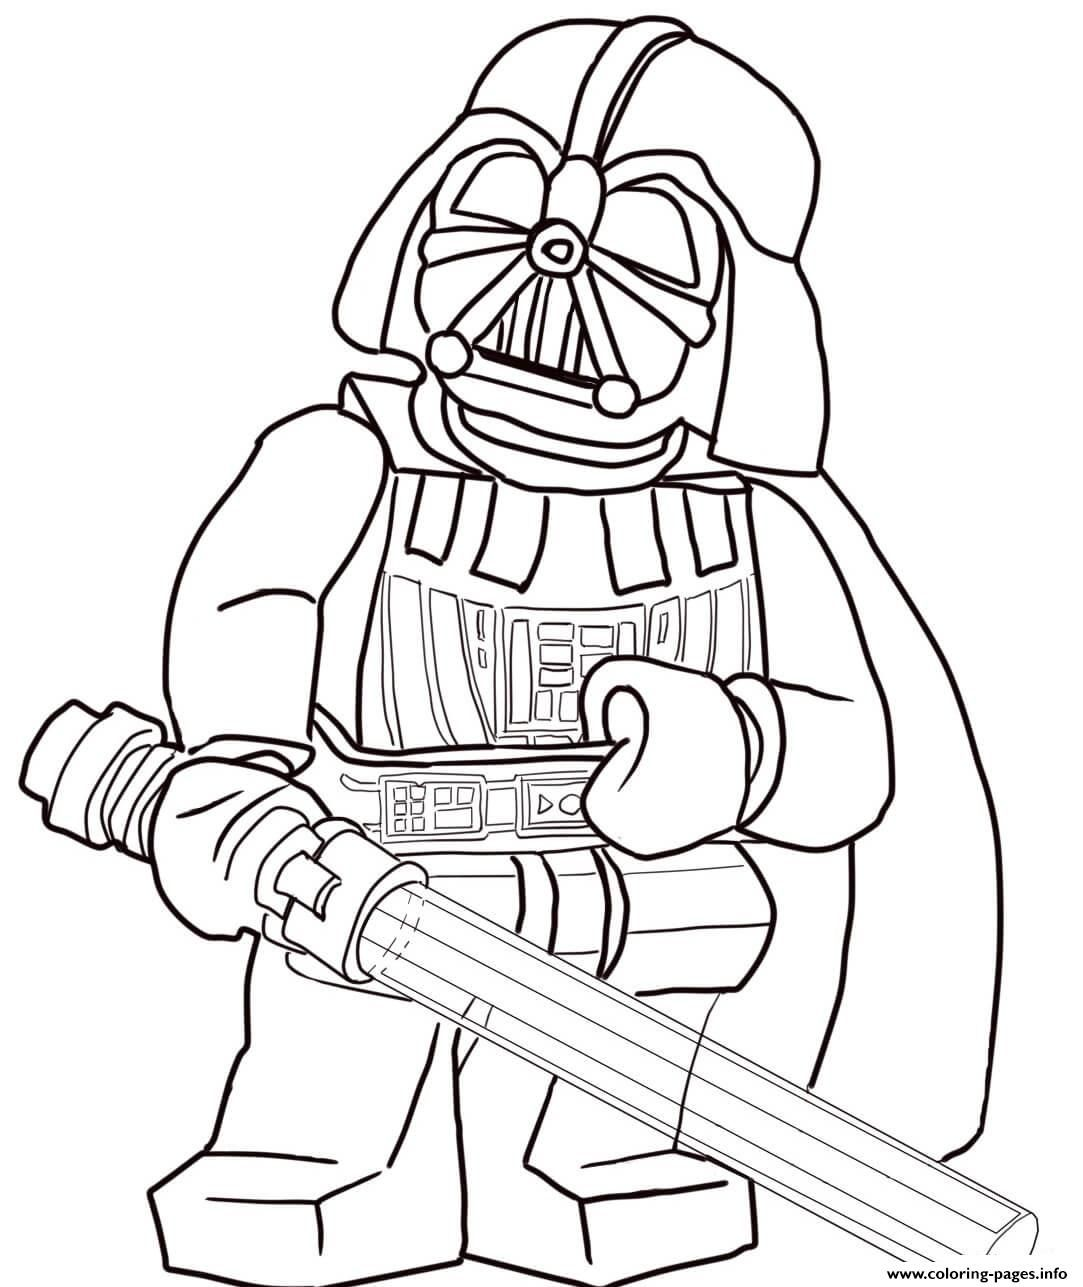 Print Lego Star Wars Darth Vader Coloring Pages Star Wars Coloring Sheet Lego Coloring Pages Star Wars Colors